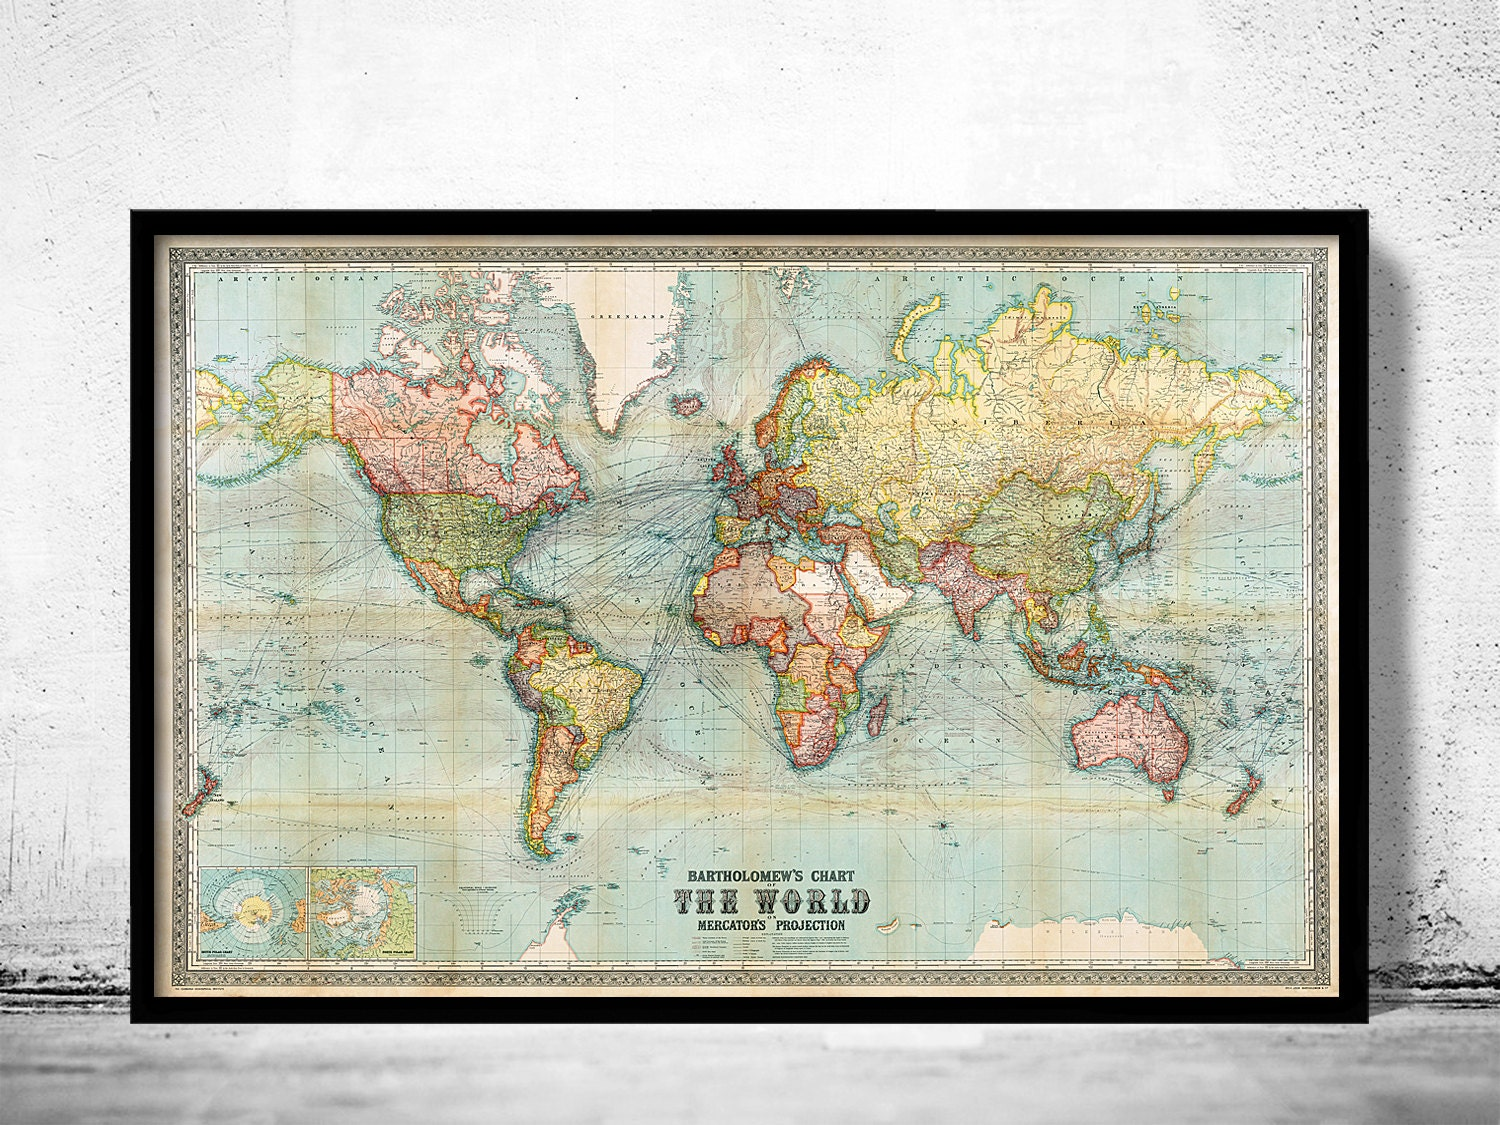 Beautiful world map vintage atlas 1914 mercator projection zoom gumiabroncs Choice Image